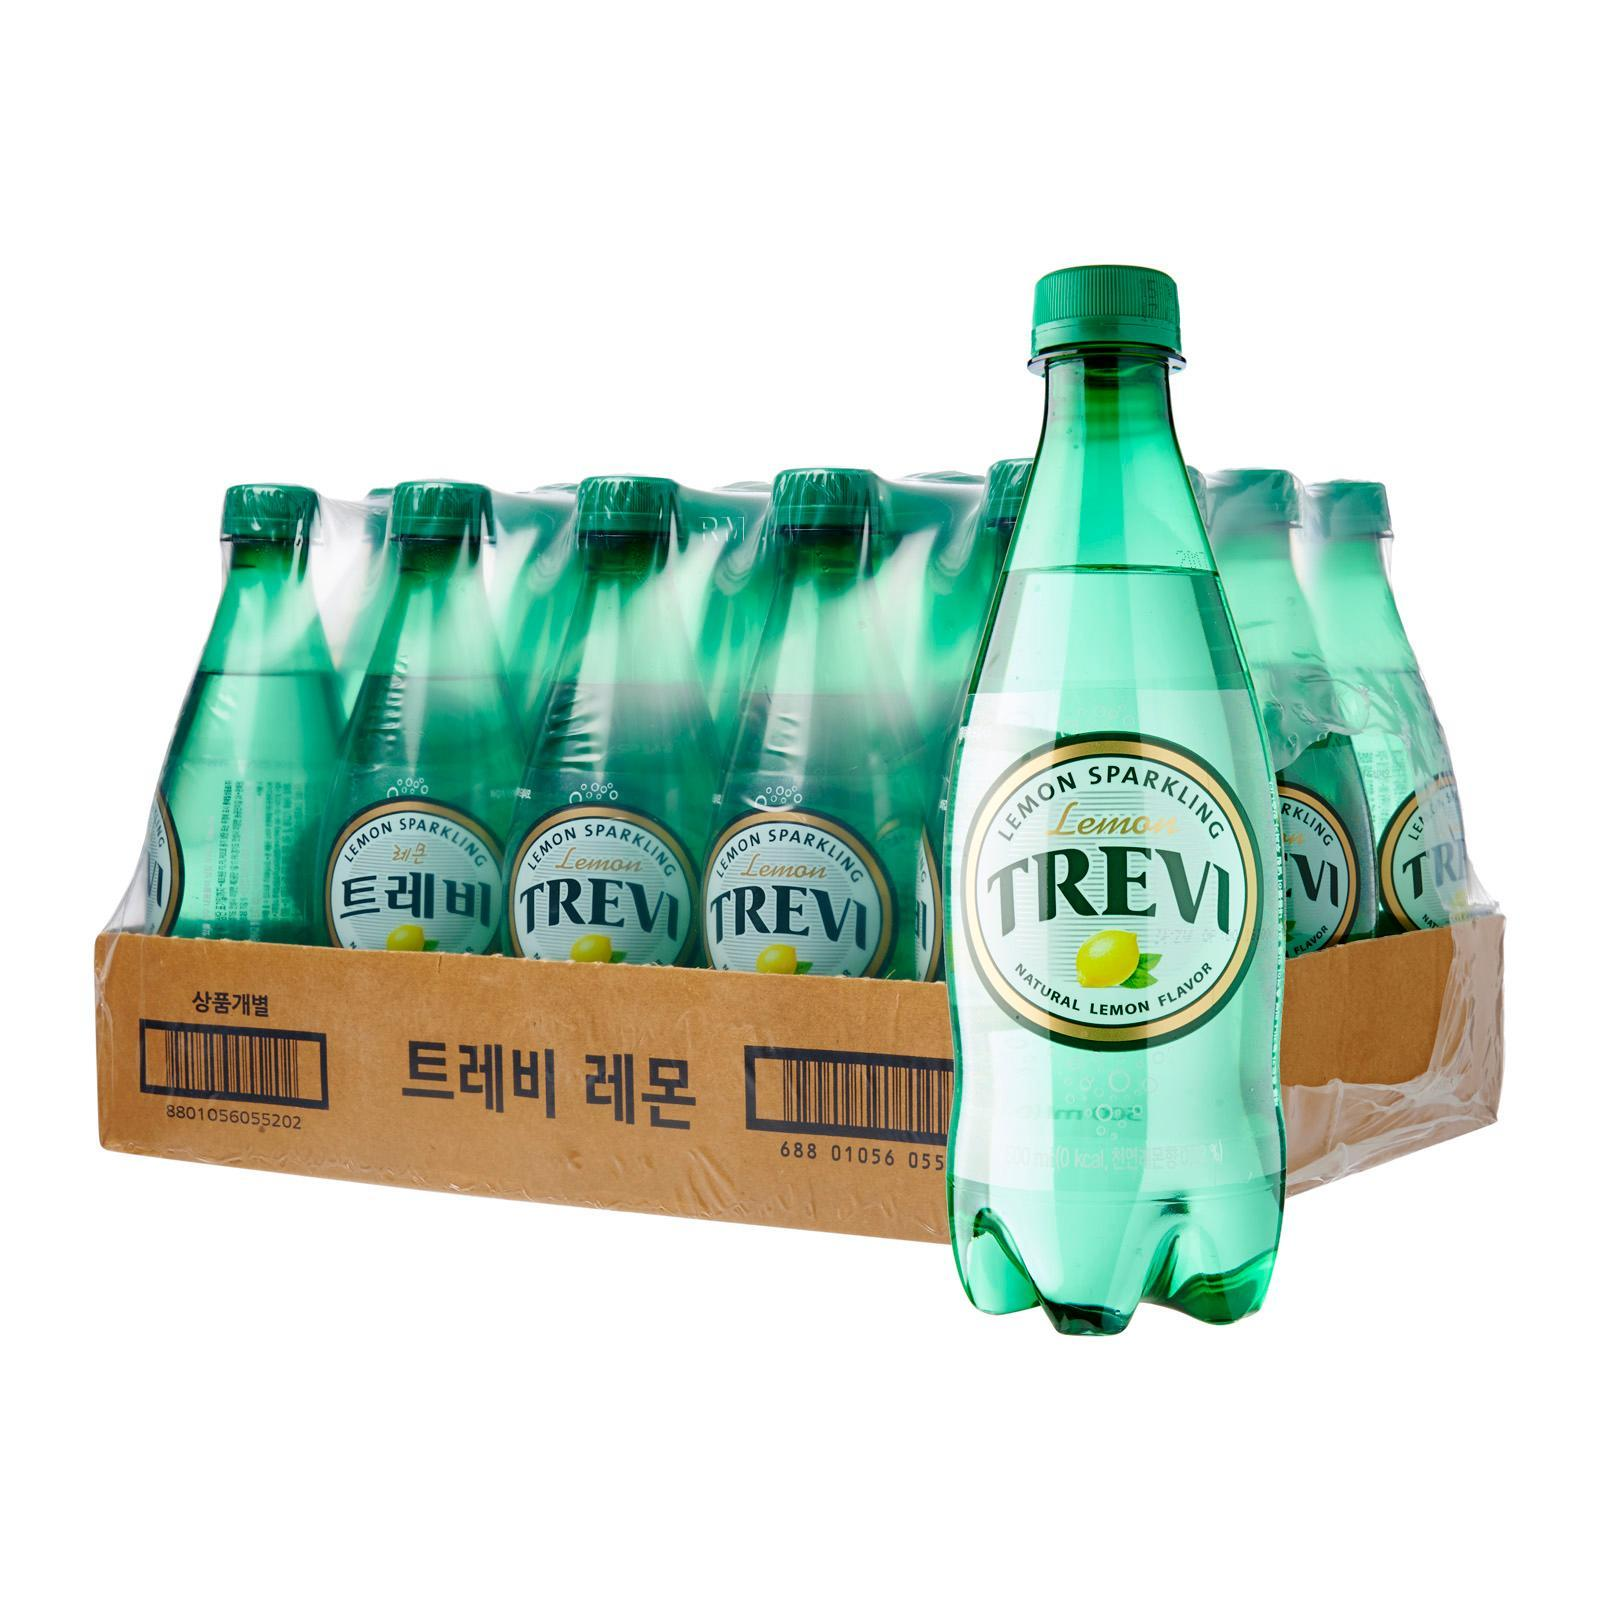 Lotte Chilsung Trevi Sparkling Water Lemon - Case By Redmart.